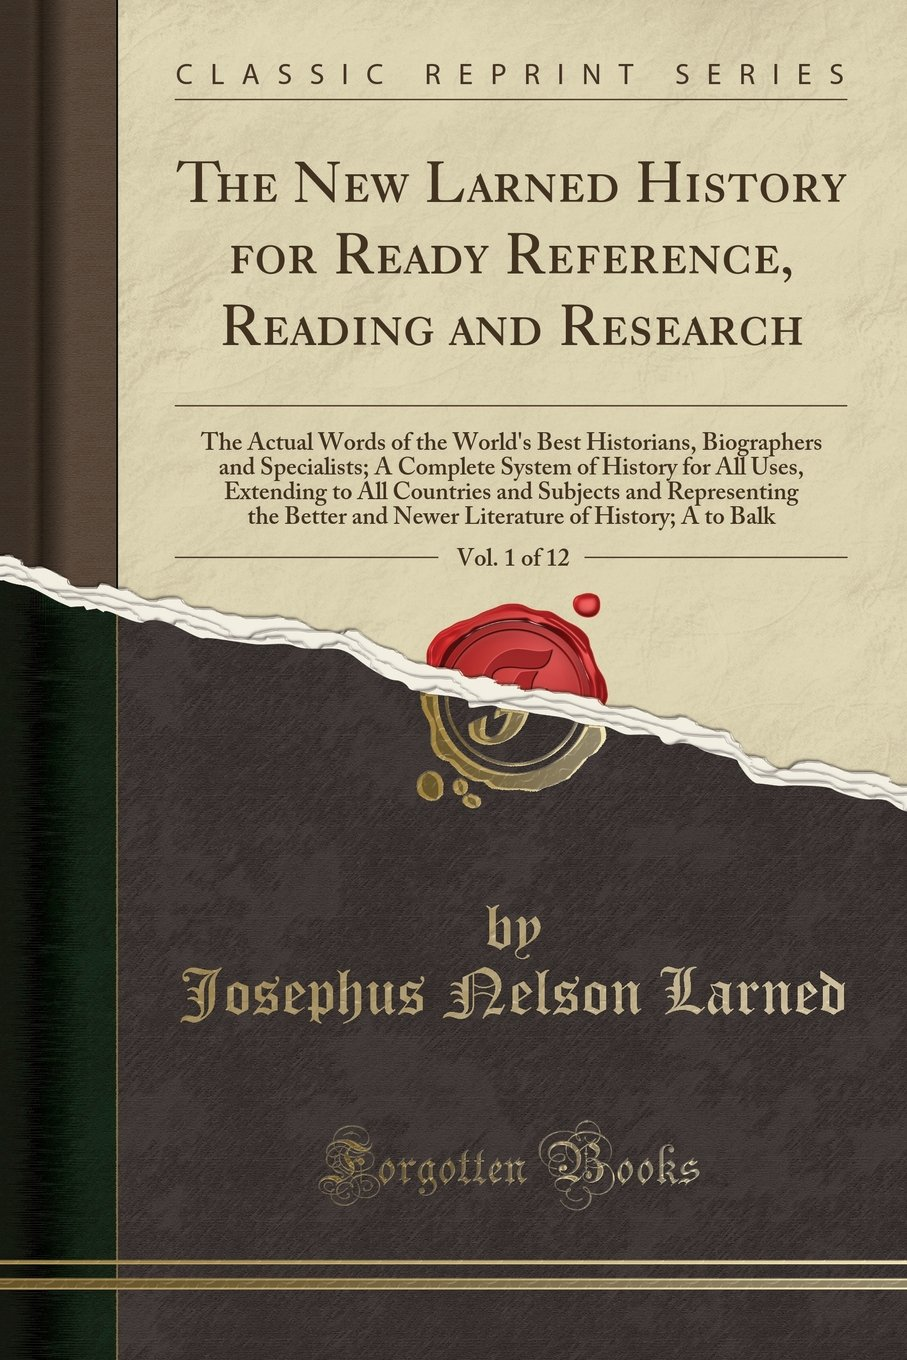 The New Larned History for Ready Reference, Reading and Research, Vol. 1 of 12: The Actual Words of the World's Best Historians, Biographers and ... to All Countries and Subjects and Representi ebook